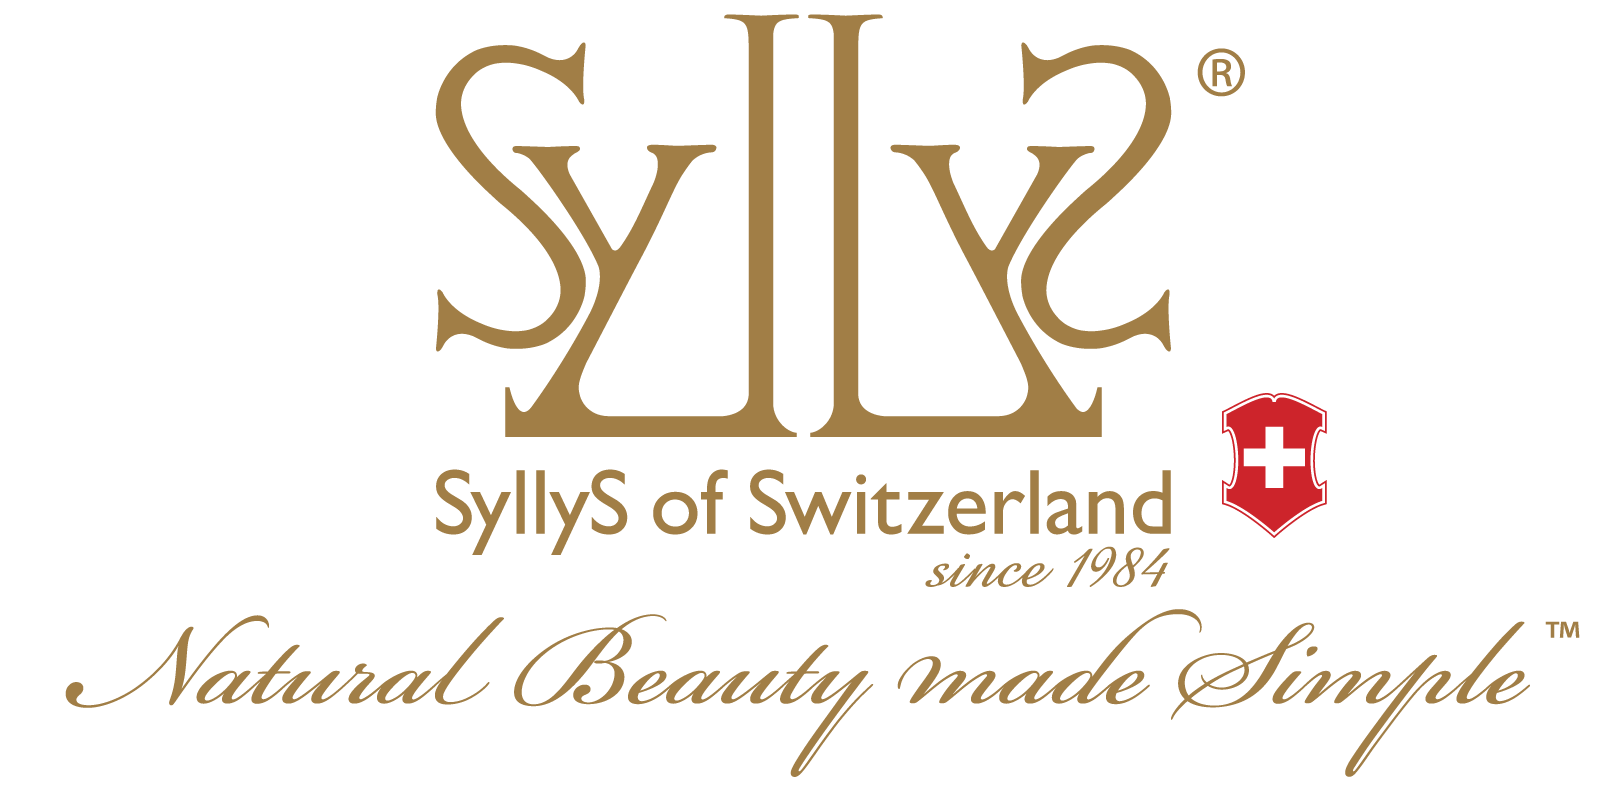 Gold colored mark with stylized letters Syllys. Below the logo is the full brand name in small gold Arial text Syllys of Switzerland since 1984 with the Swiss emblem right next to it. Underneath in cursive gold is the slogan Natural Beauty Made Simple